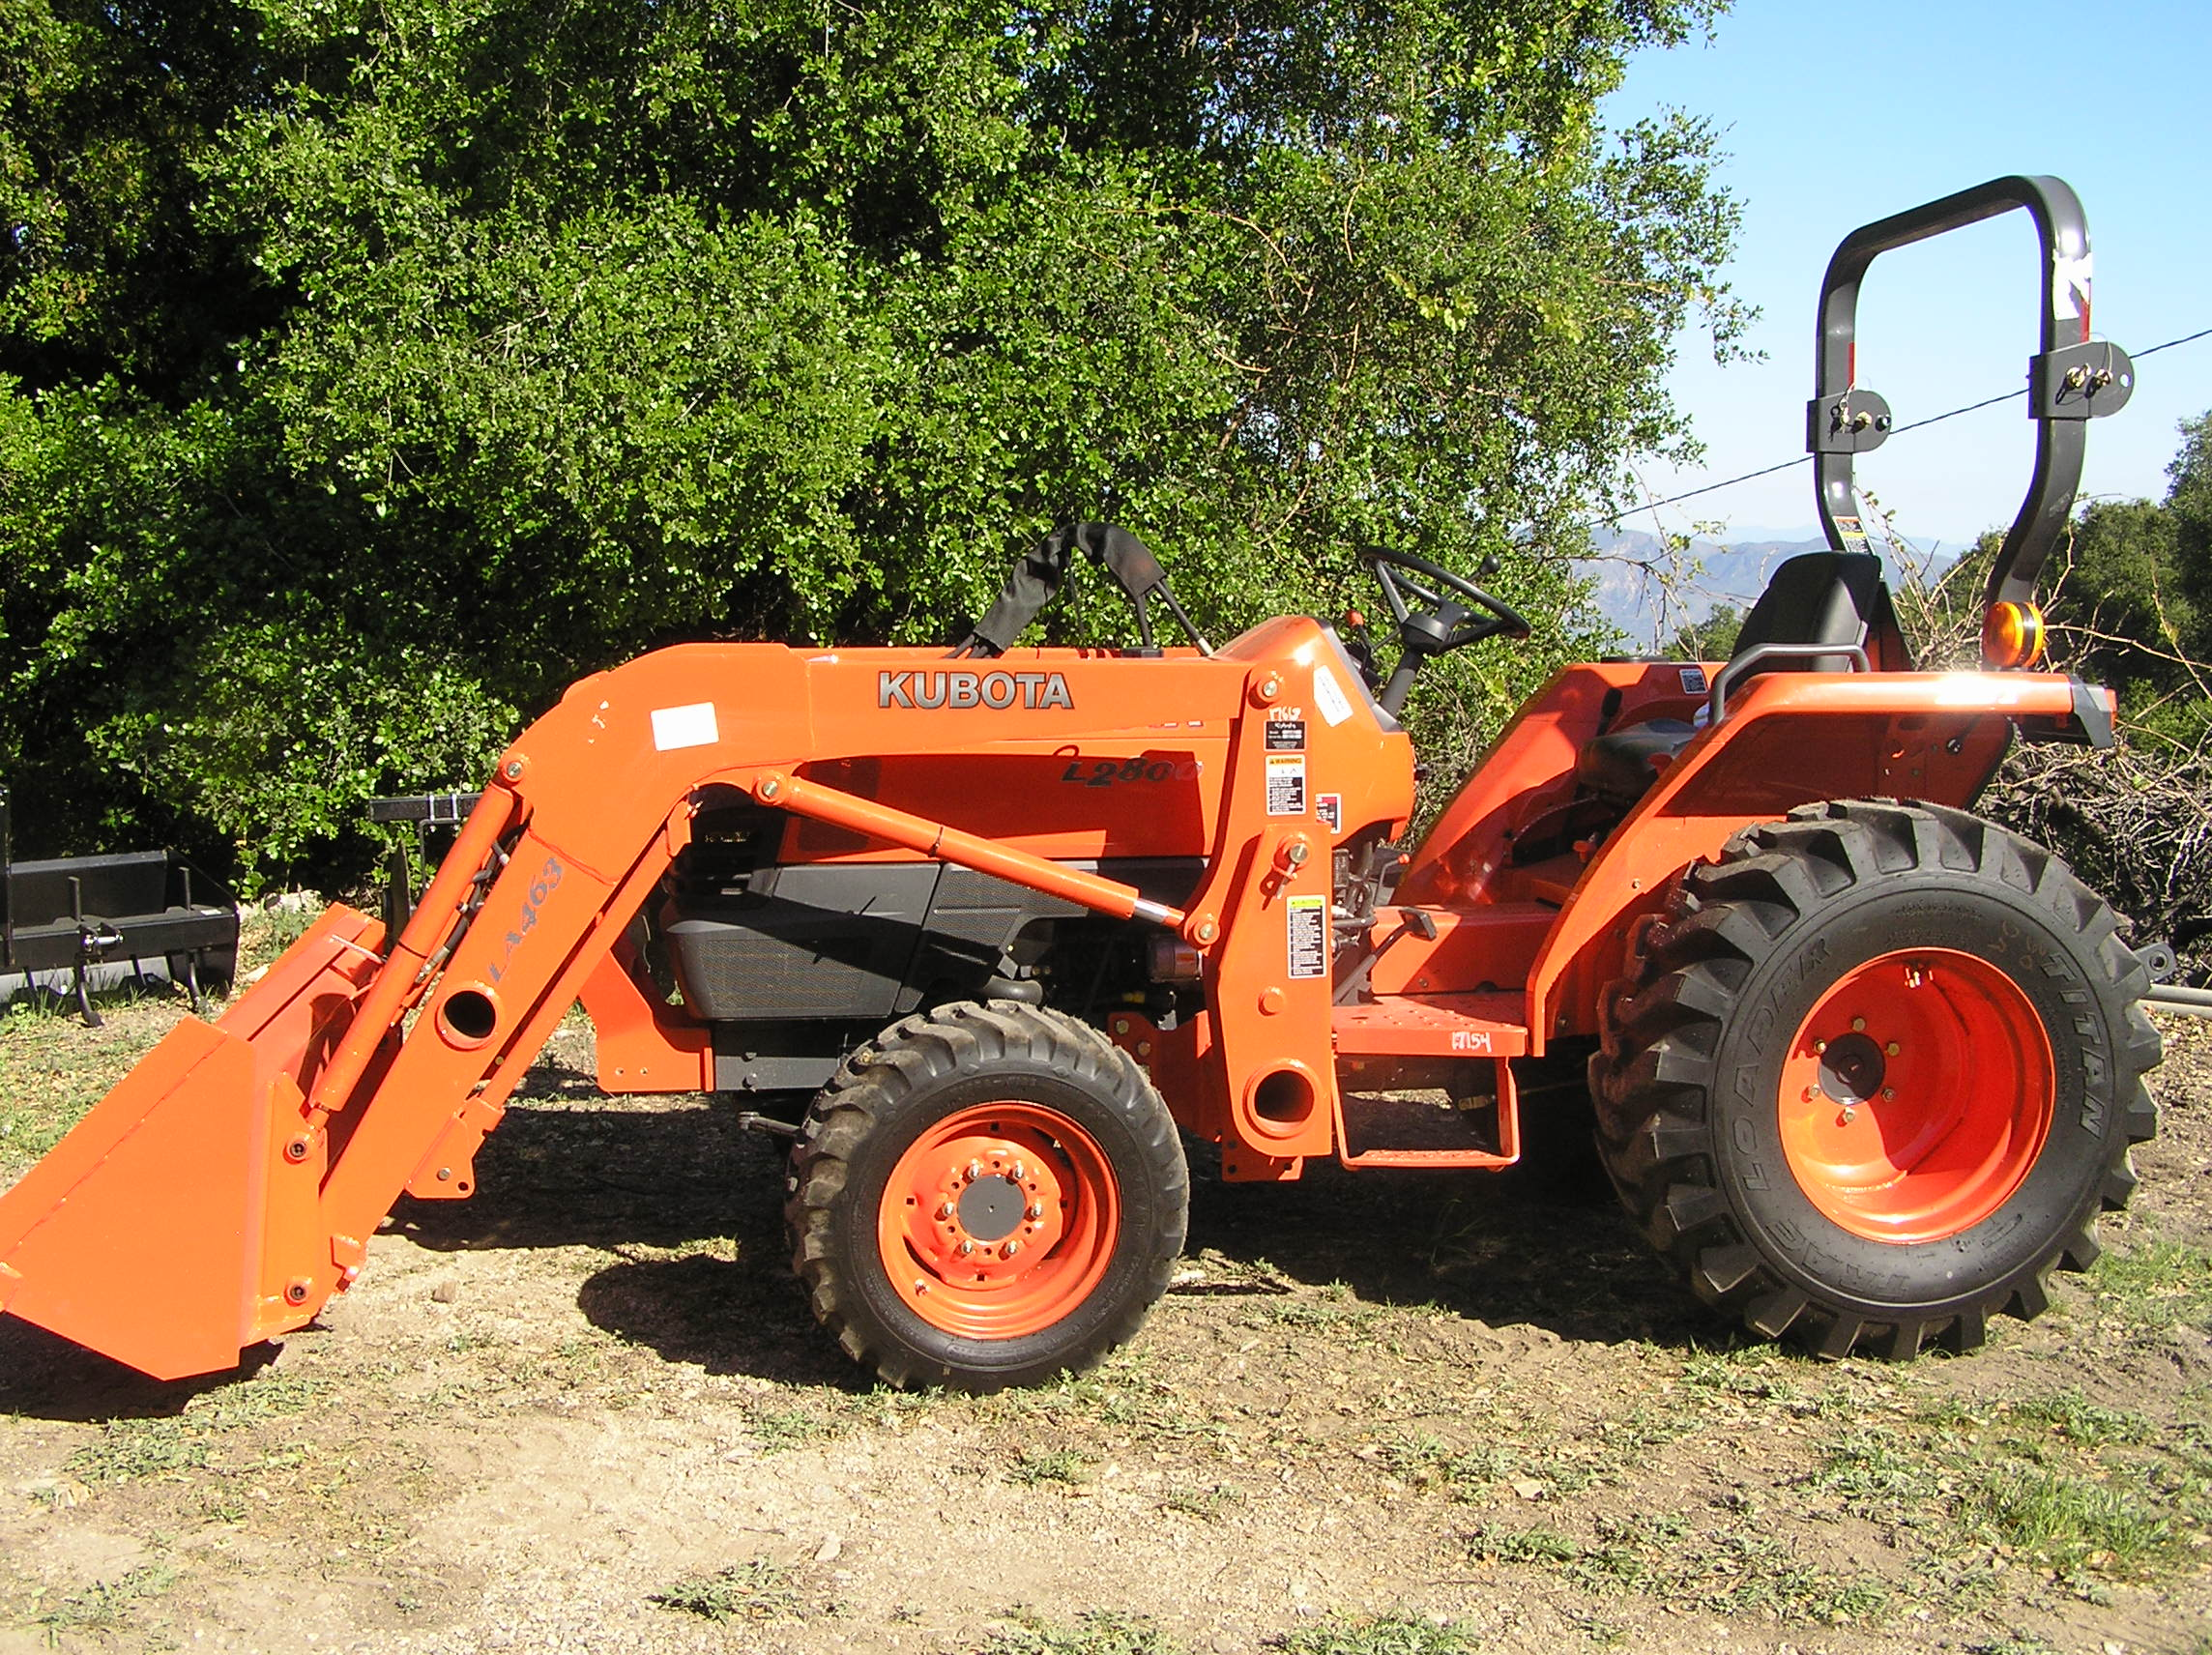 THE KUBOTA TRACTOR and its three major implements created the ability to do more in less time. (Ray Johnston photo, 2007.)